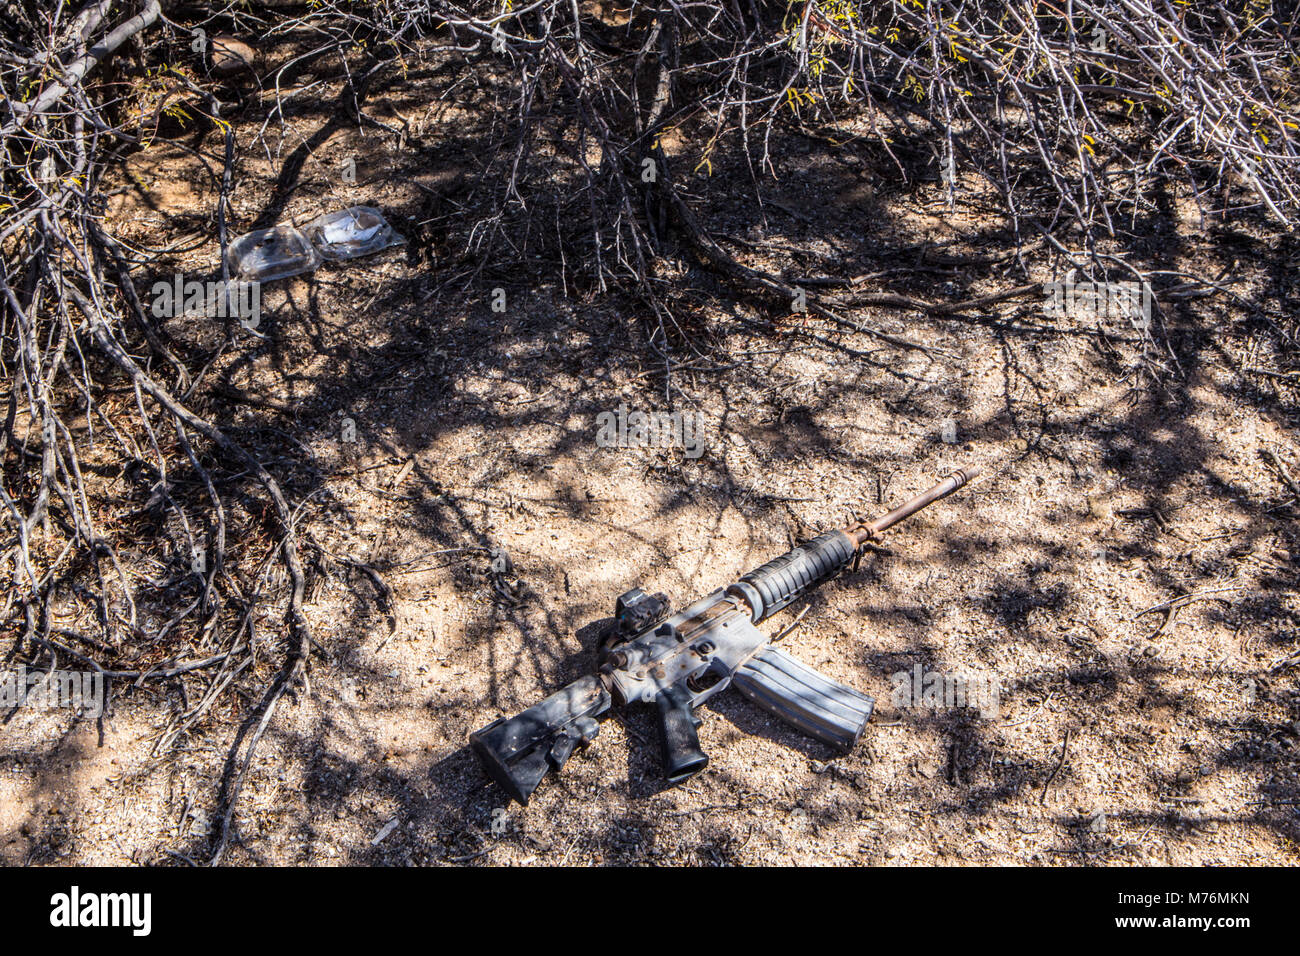 An AR 15 found in the desert. A smuggler's weapon. Stock Photo